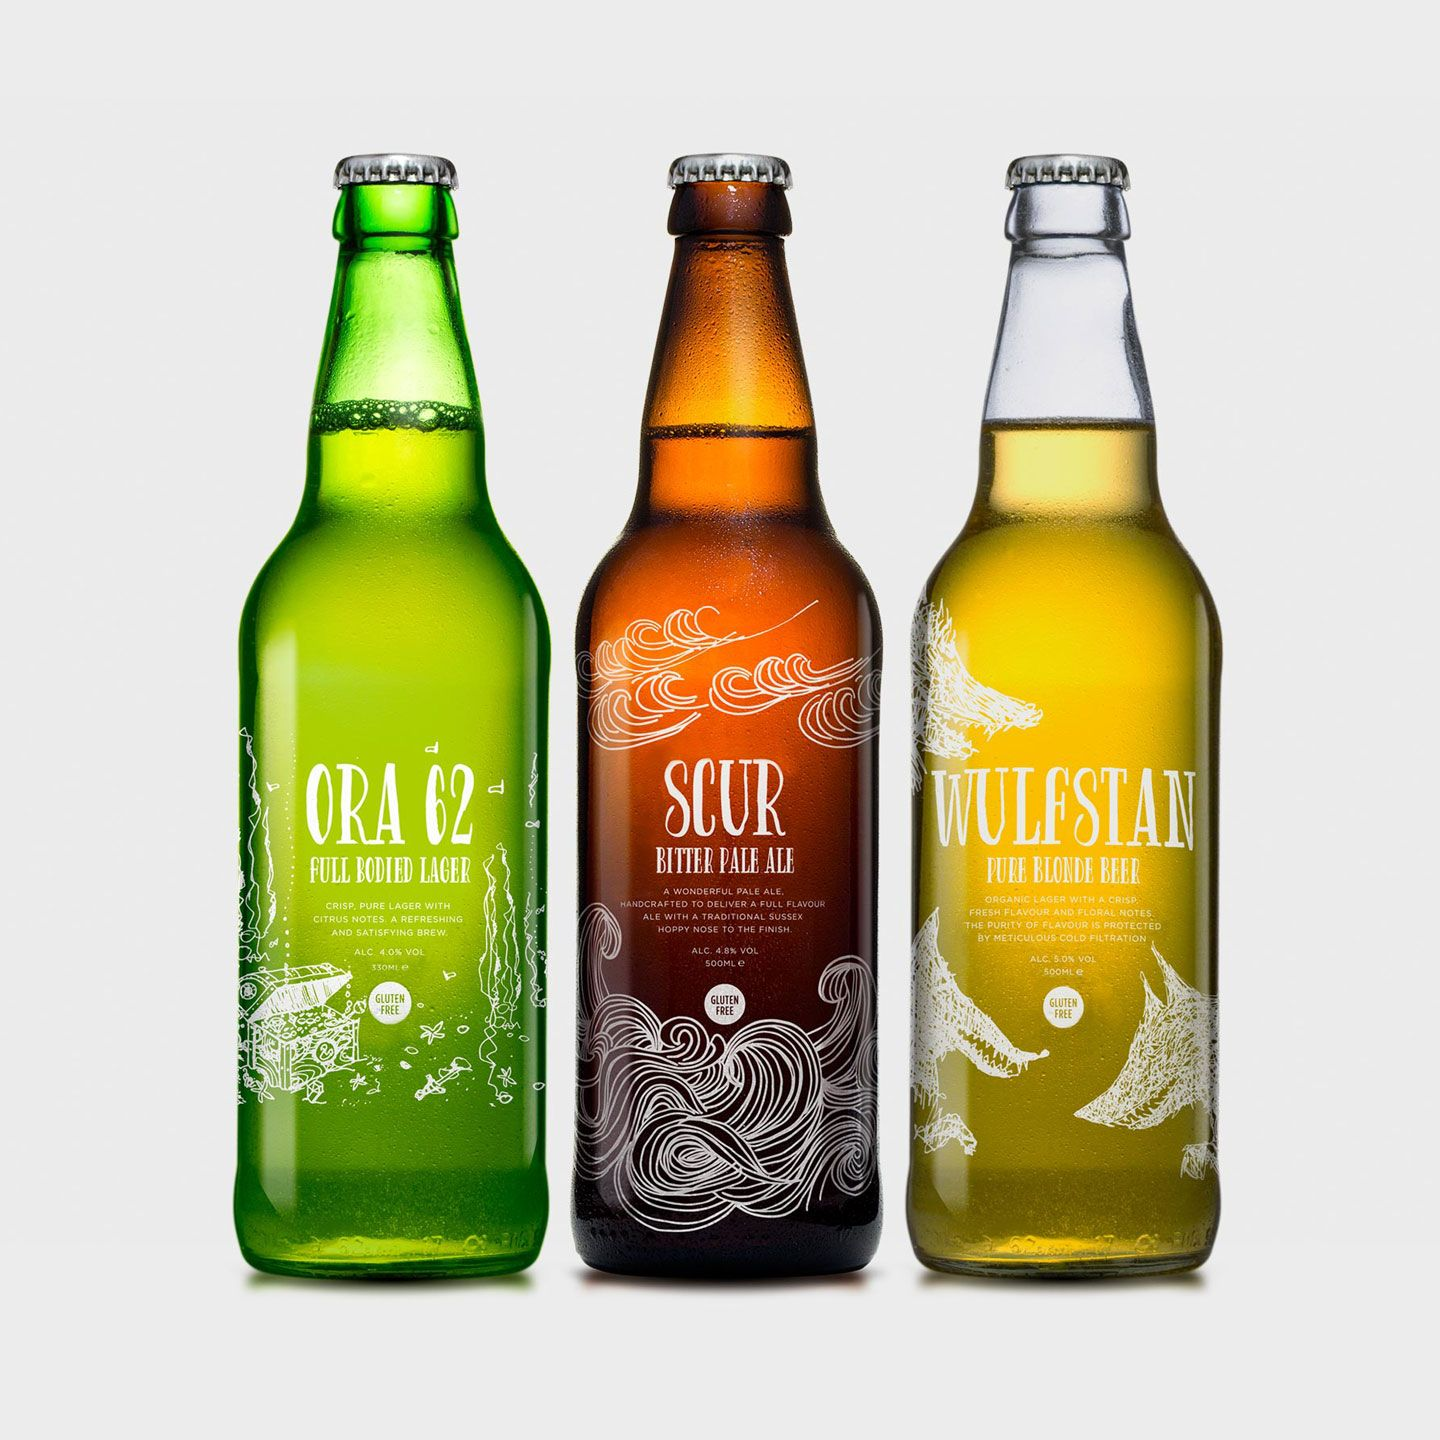 Visual identity and packaging for Coori Beer designed by Felt